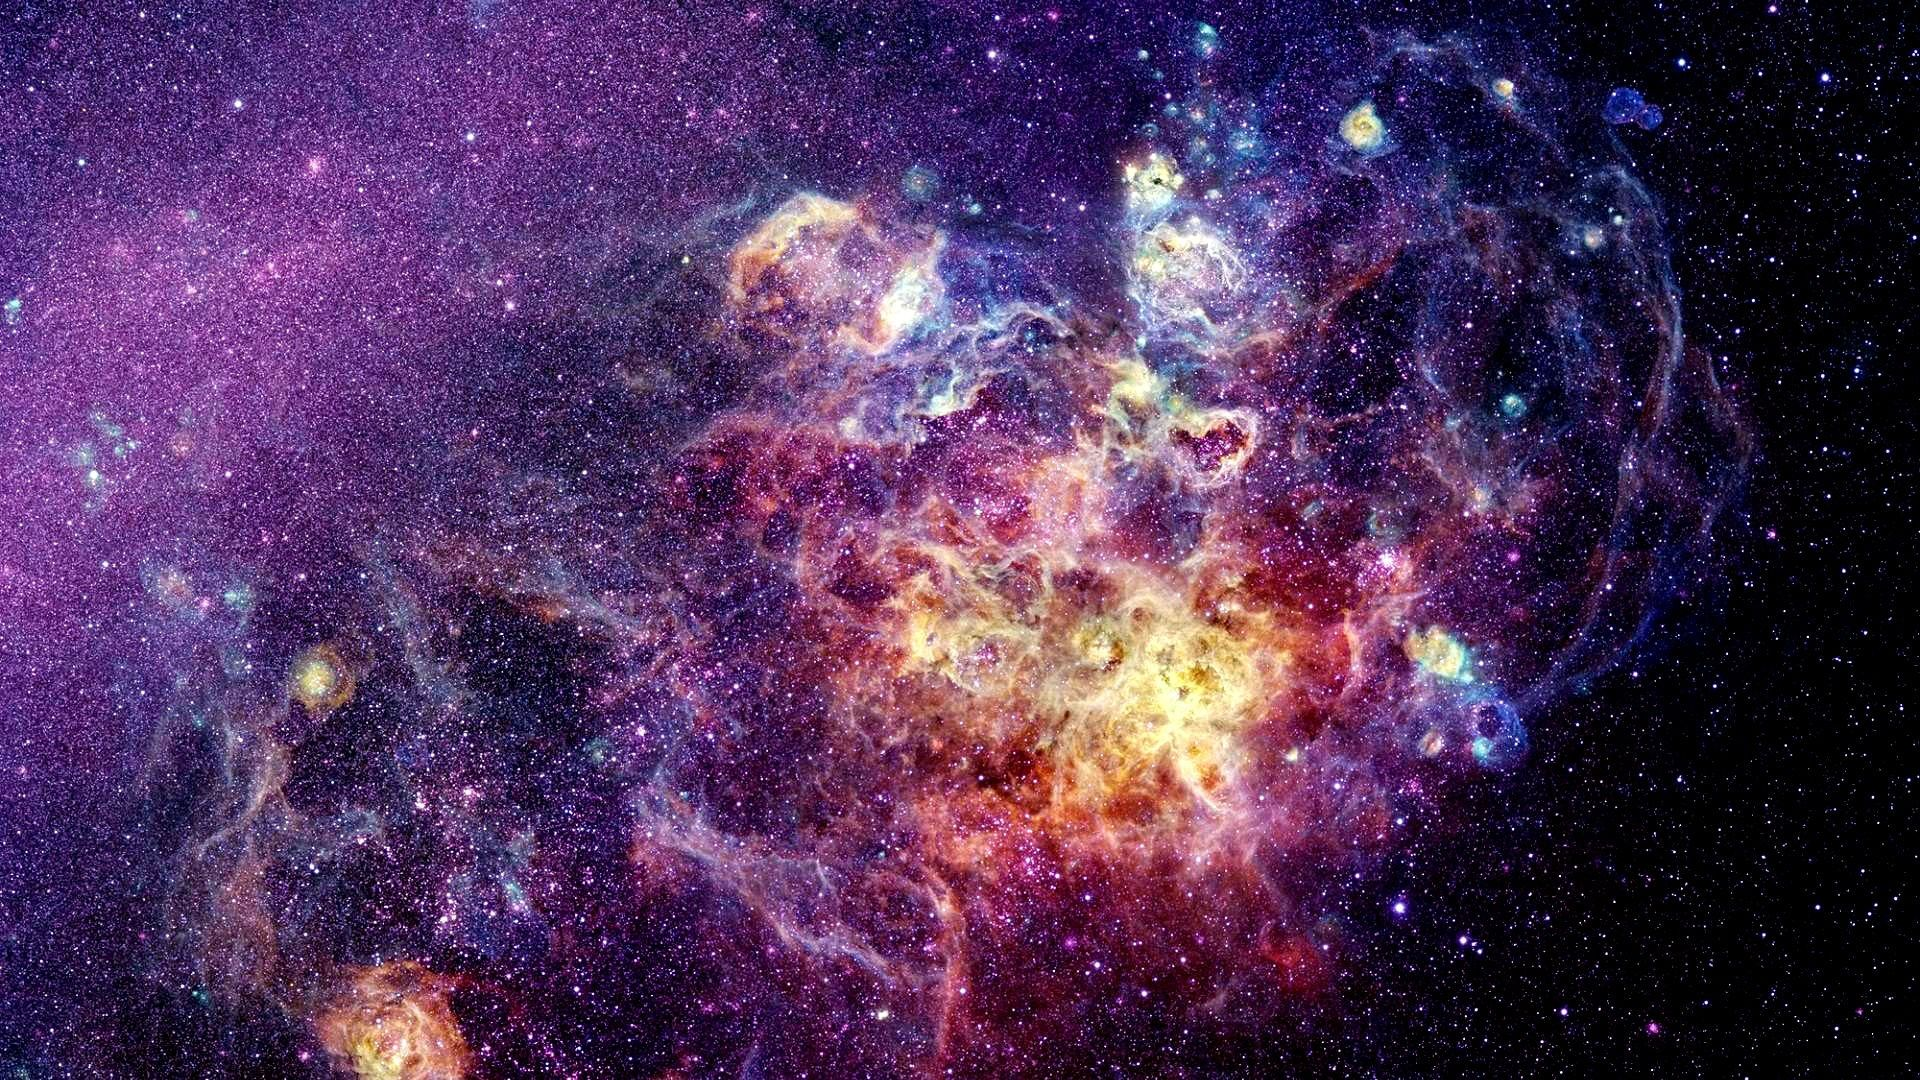 Best Wallpaper High Quality Nebula - 5e2169132377a5bec40d66b2cddf5f87  Photograph_78924.jpg